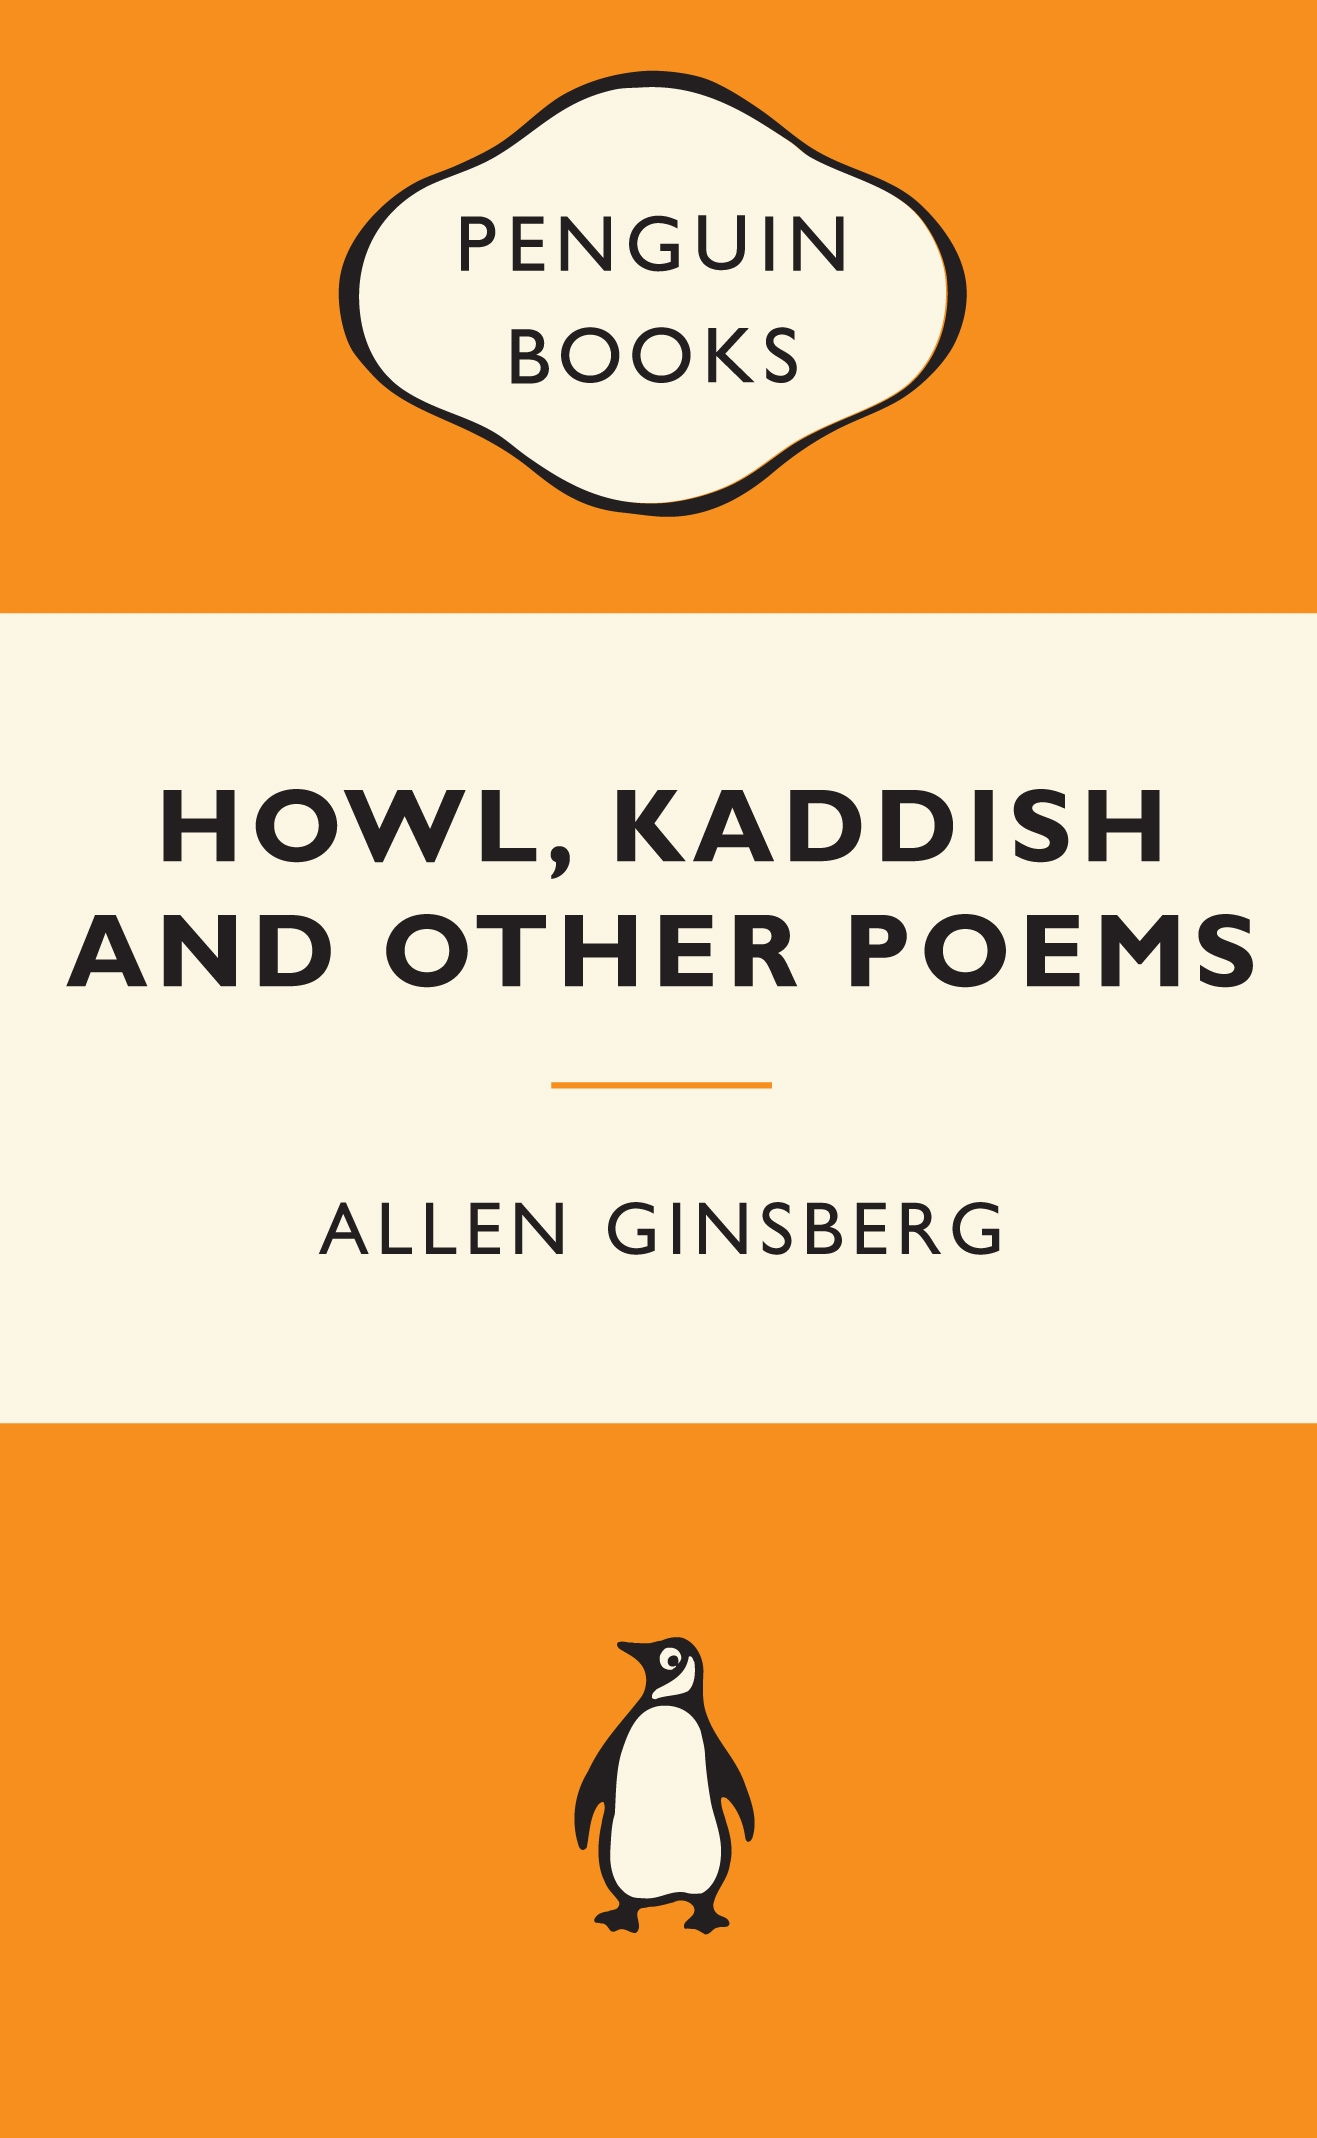 essays on howl by allen ginsberg 1 day ago allen ginsberg: howl and other poems by jeff tamarkin on june 19, 2018  a booklet containing essays and commentaries by anne.